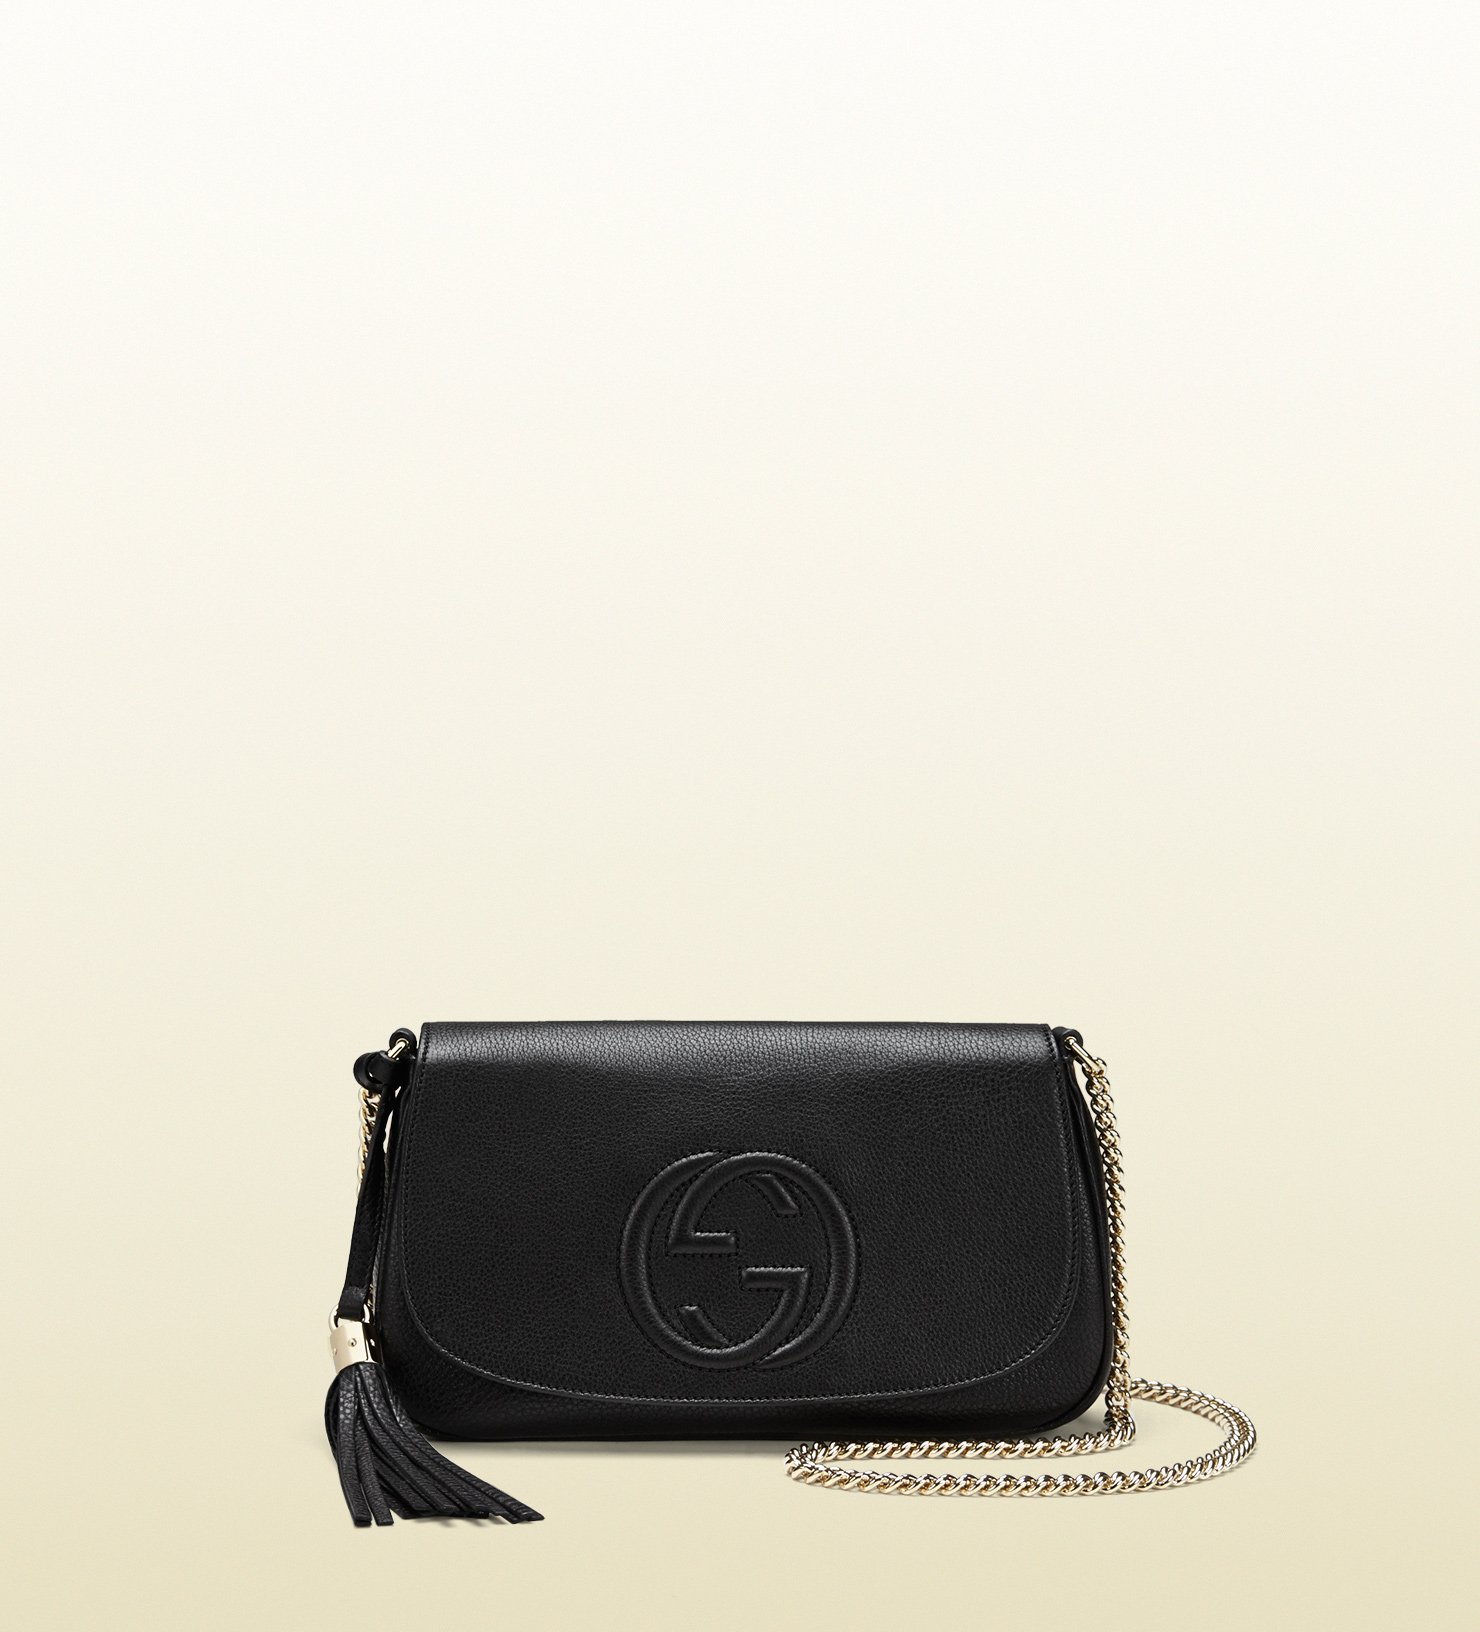 4dd4ad98cff390 Gucci Soho Leather Shoulder Bag in Black - Lyst